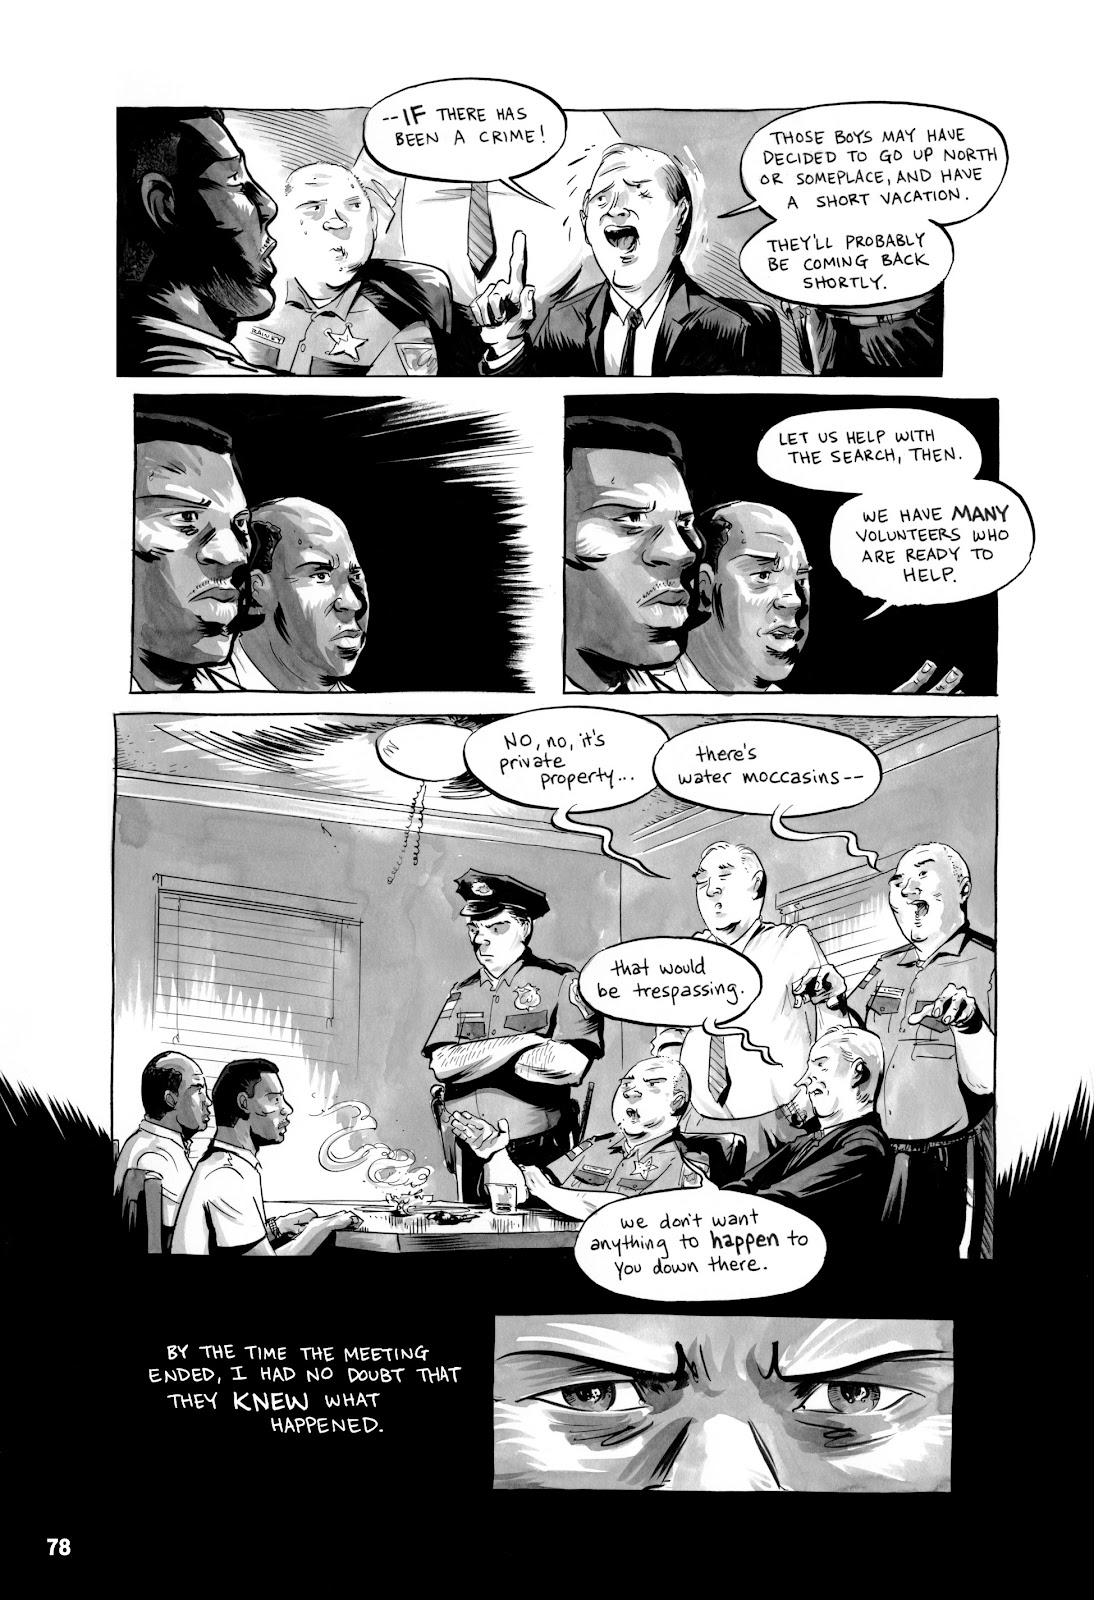 March 3 Page 75